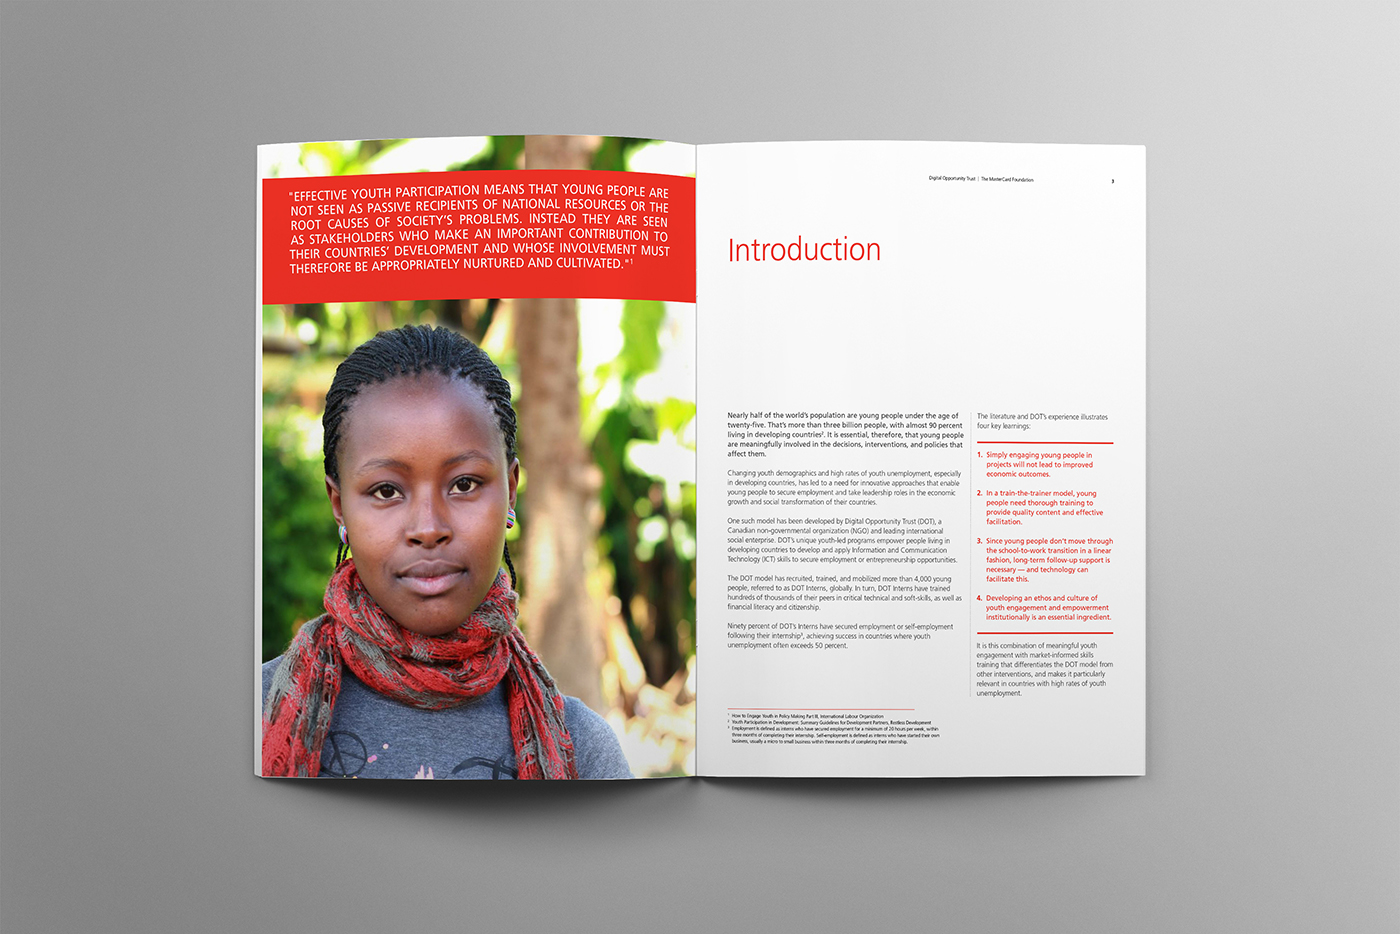 The Mastercard Foundation intro spread features an picture of a young African Canadian woman who will benefit from the internship program.